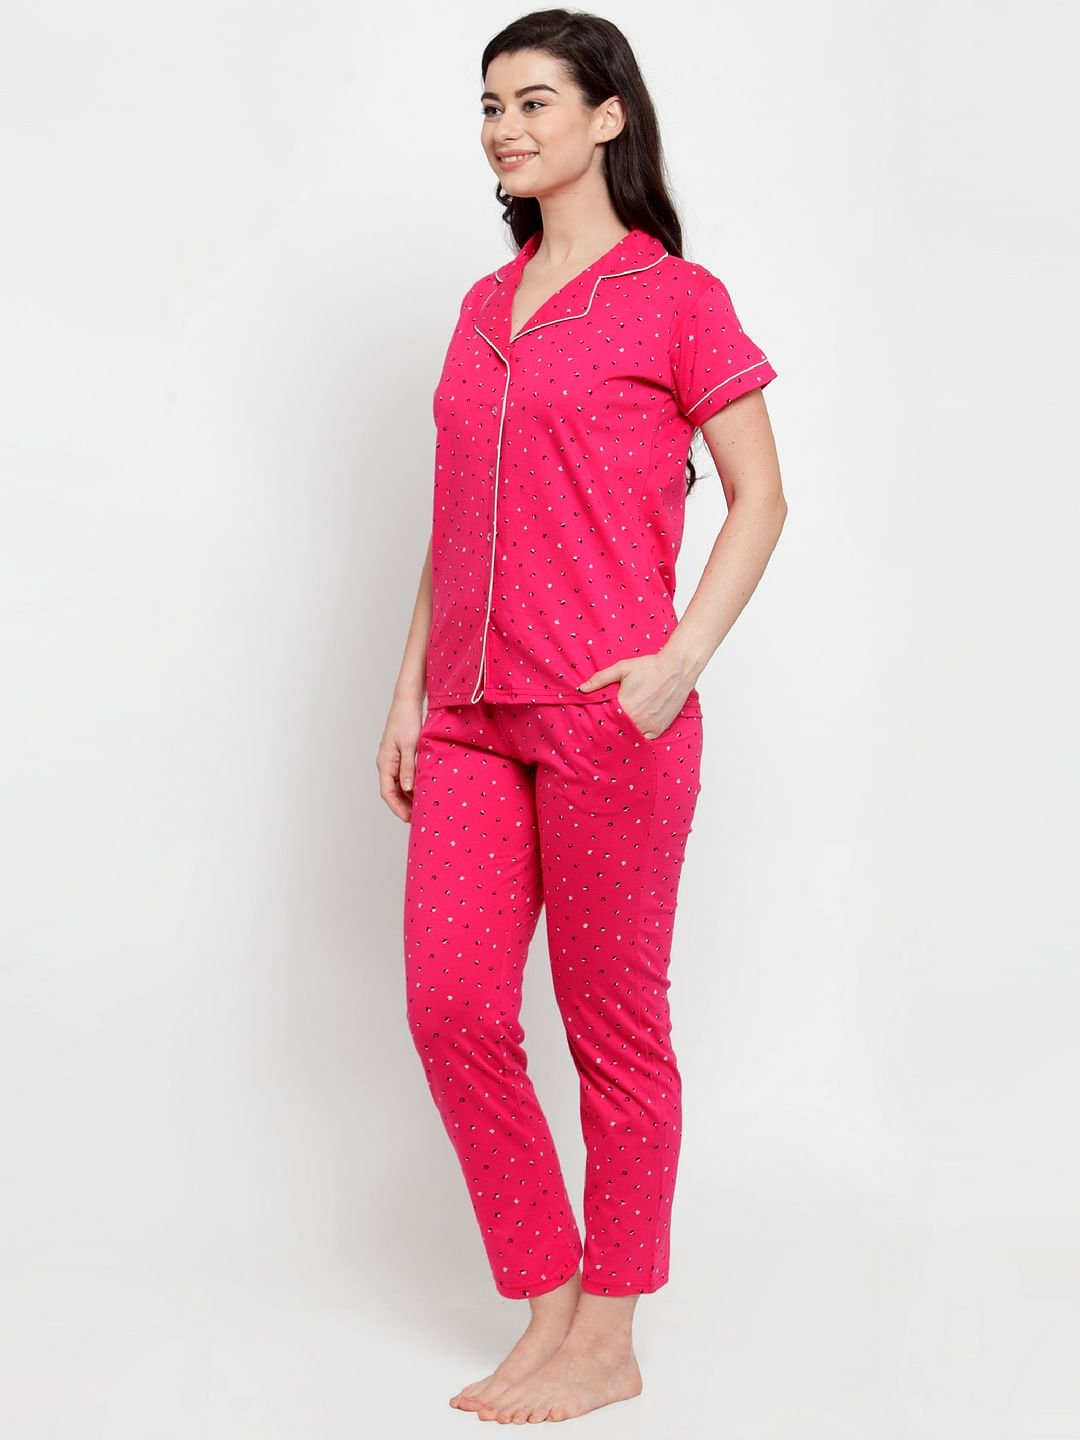 Secret Wish Women's Pink Cotton Printed Nightsuit